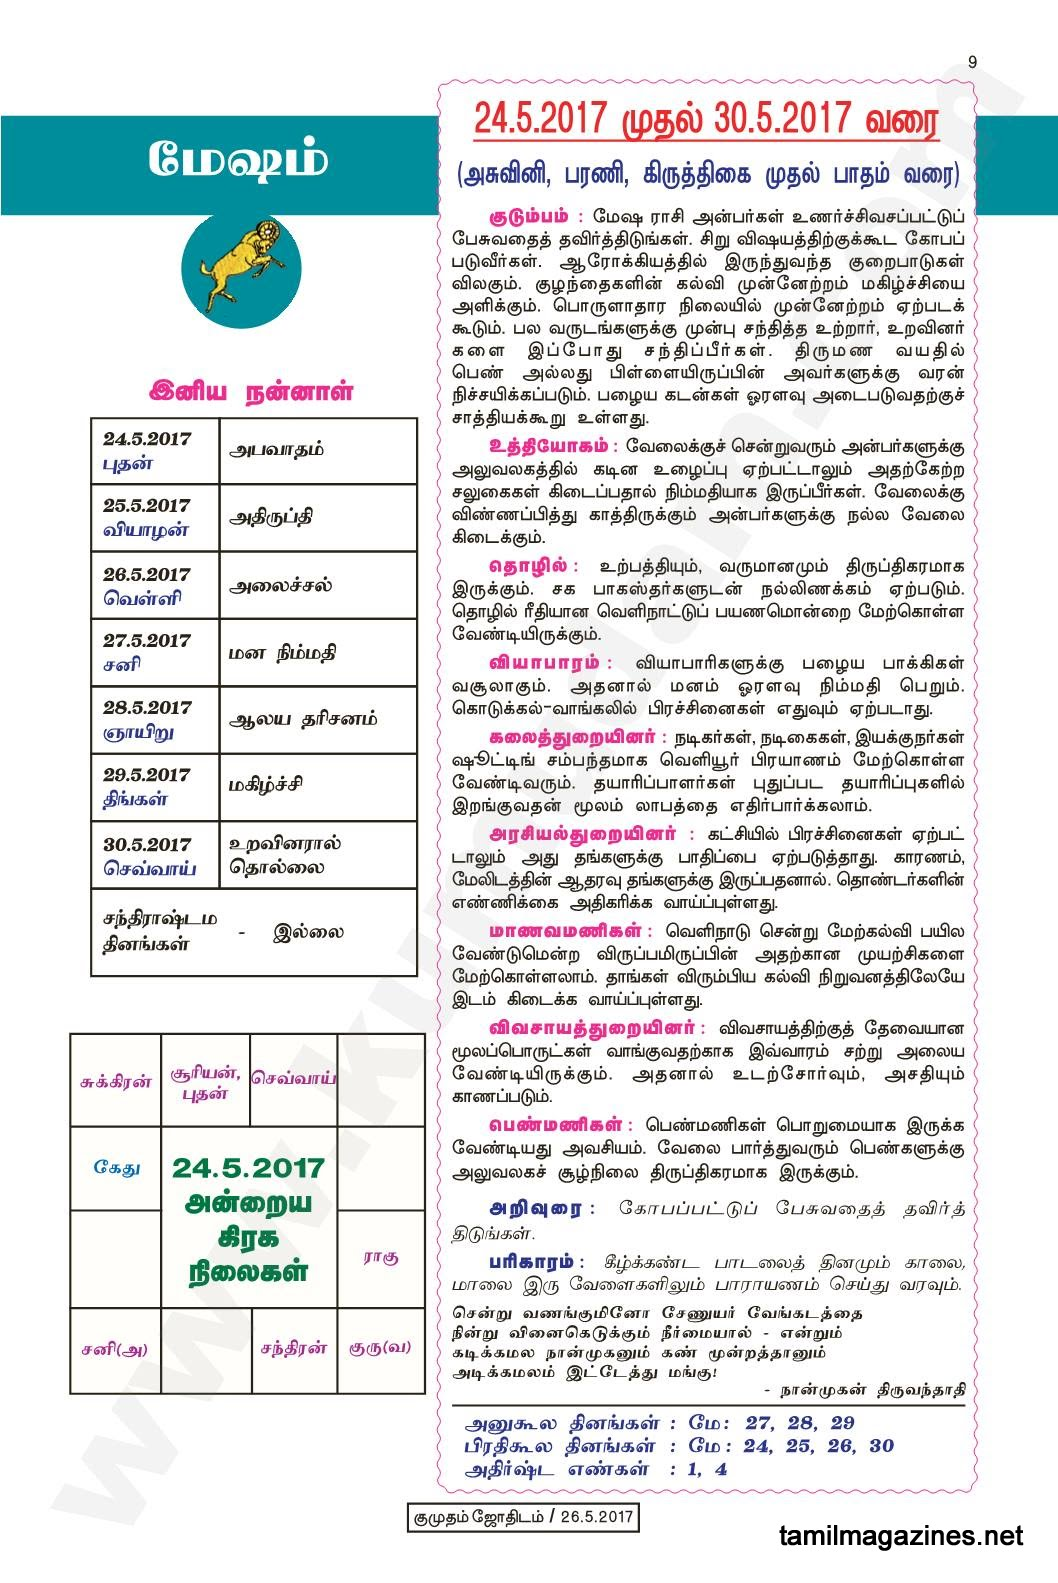 Kumudam Jothidam Raasi Palan May 24 to May 30, 2017